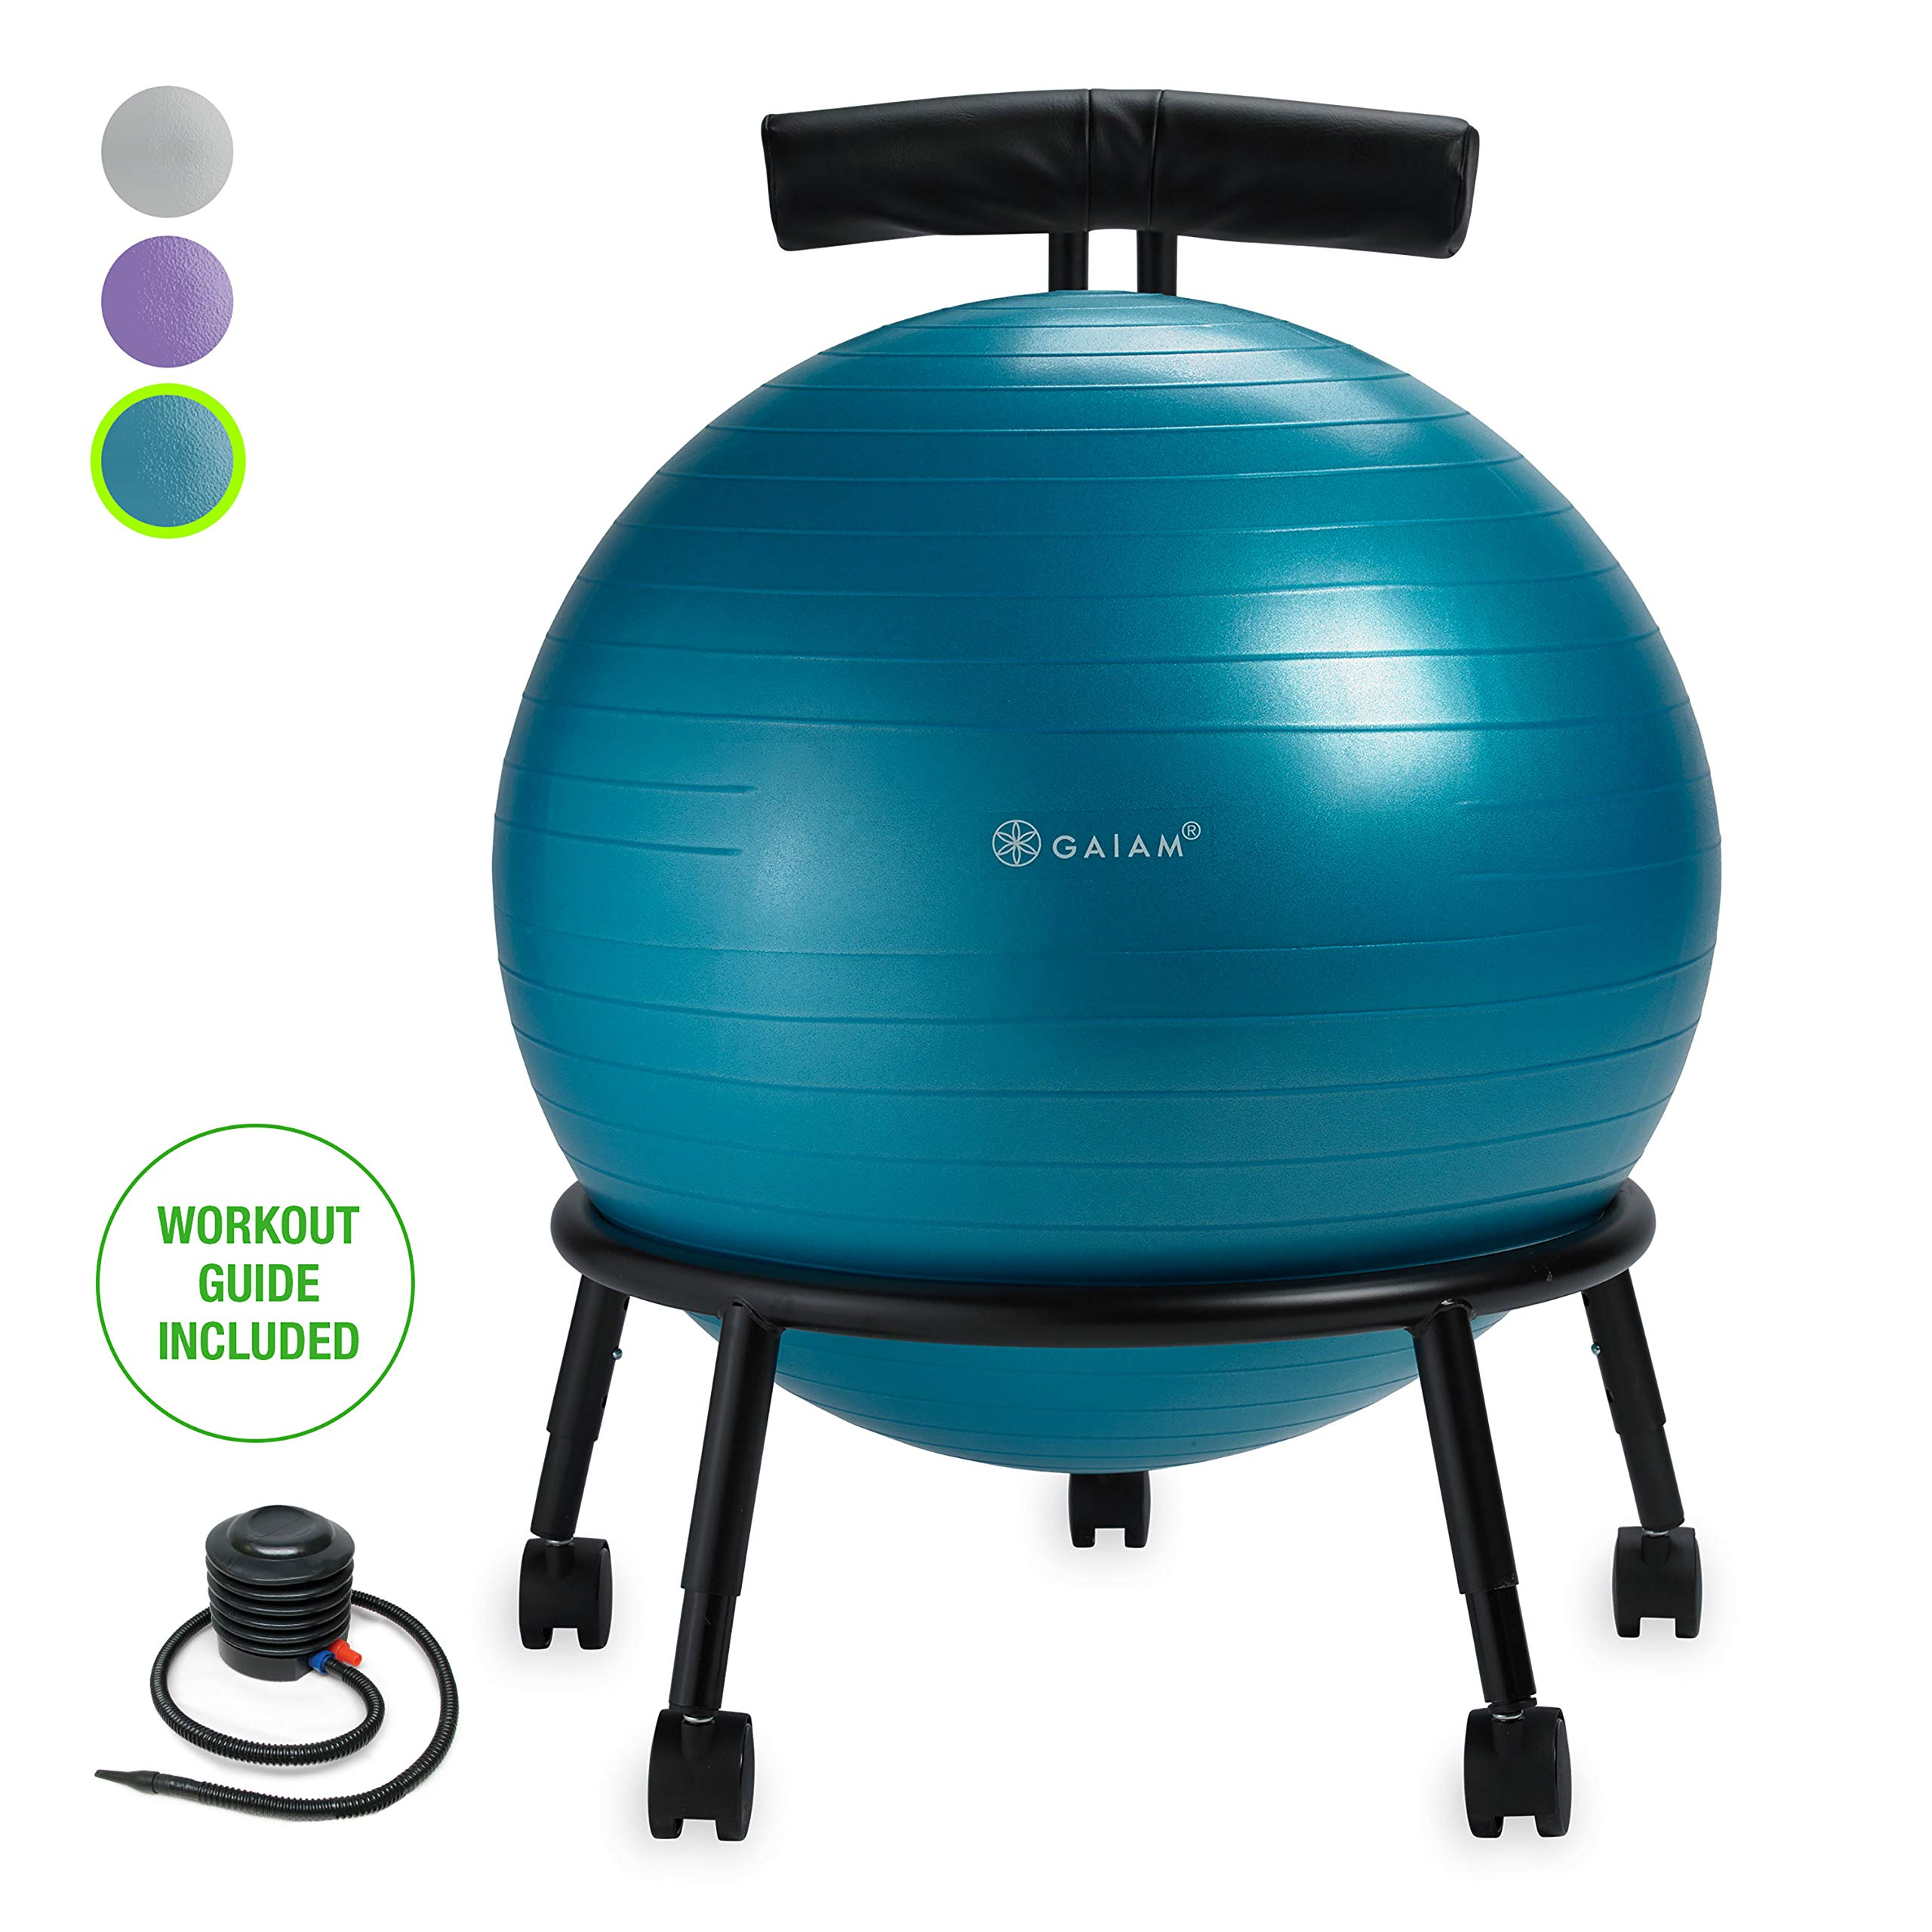 Gaiam Custom-Fit Balance Ball Chair - Exercise Stability Ball Adjustable Desk Chair for Home or Office with 55cm Yoga Ball, Air Pump, Exercise Guide and Satisfaction Guarantee, Blue by Gaiam